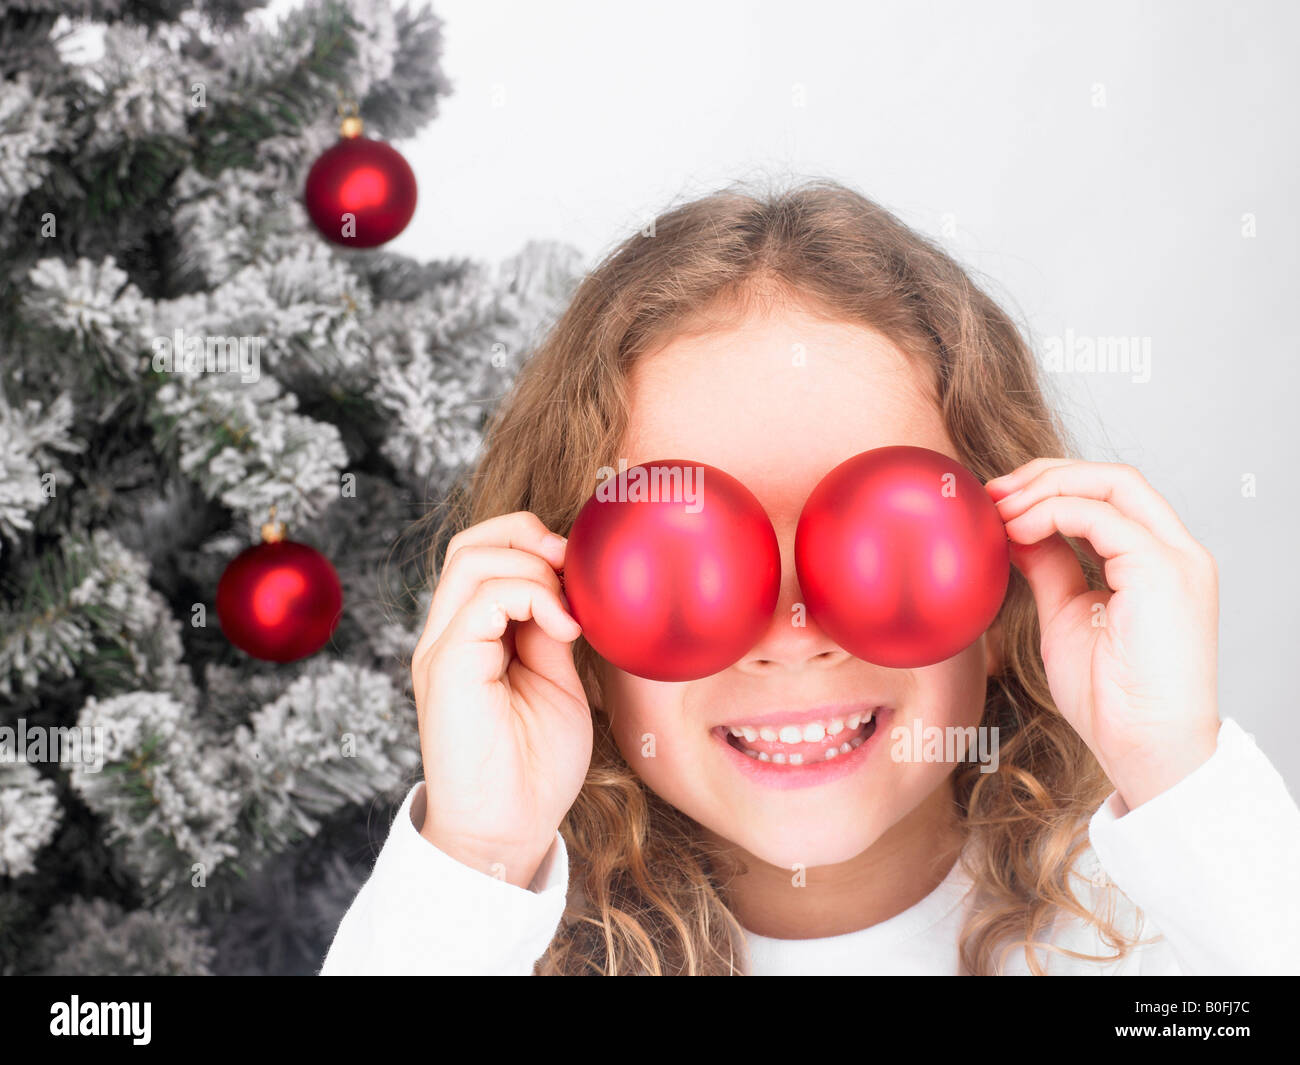 Girl playing with Christmas decoration - Stock Image